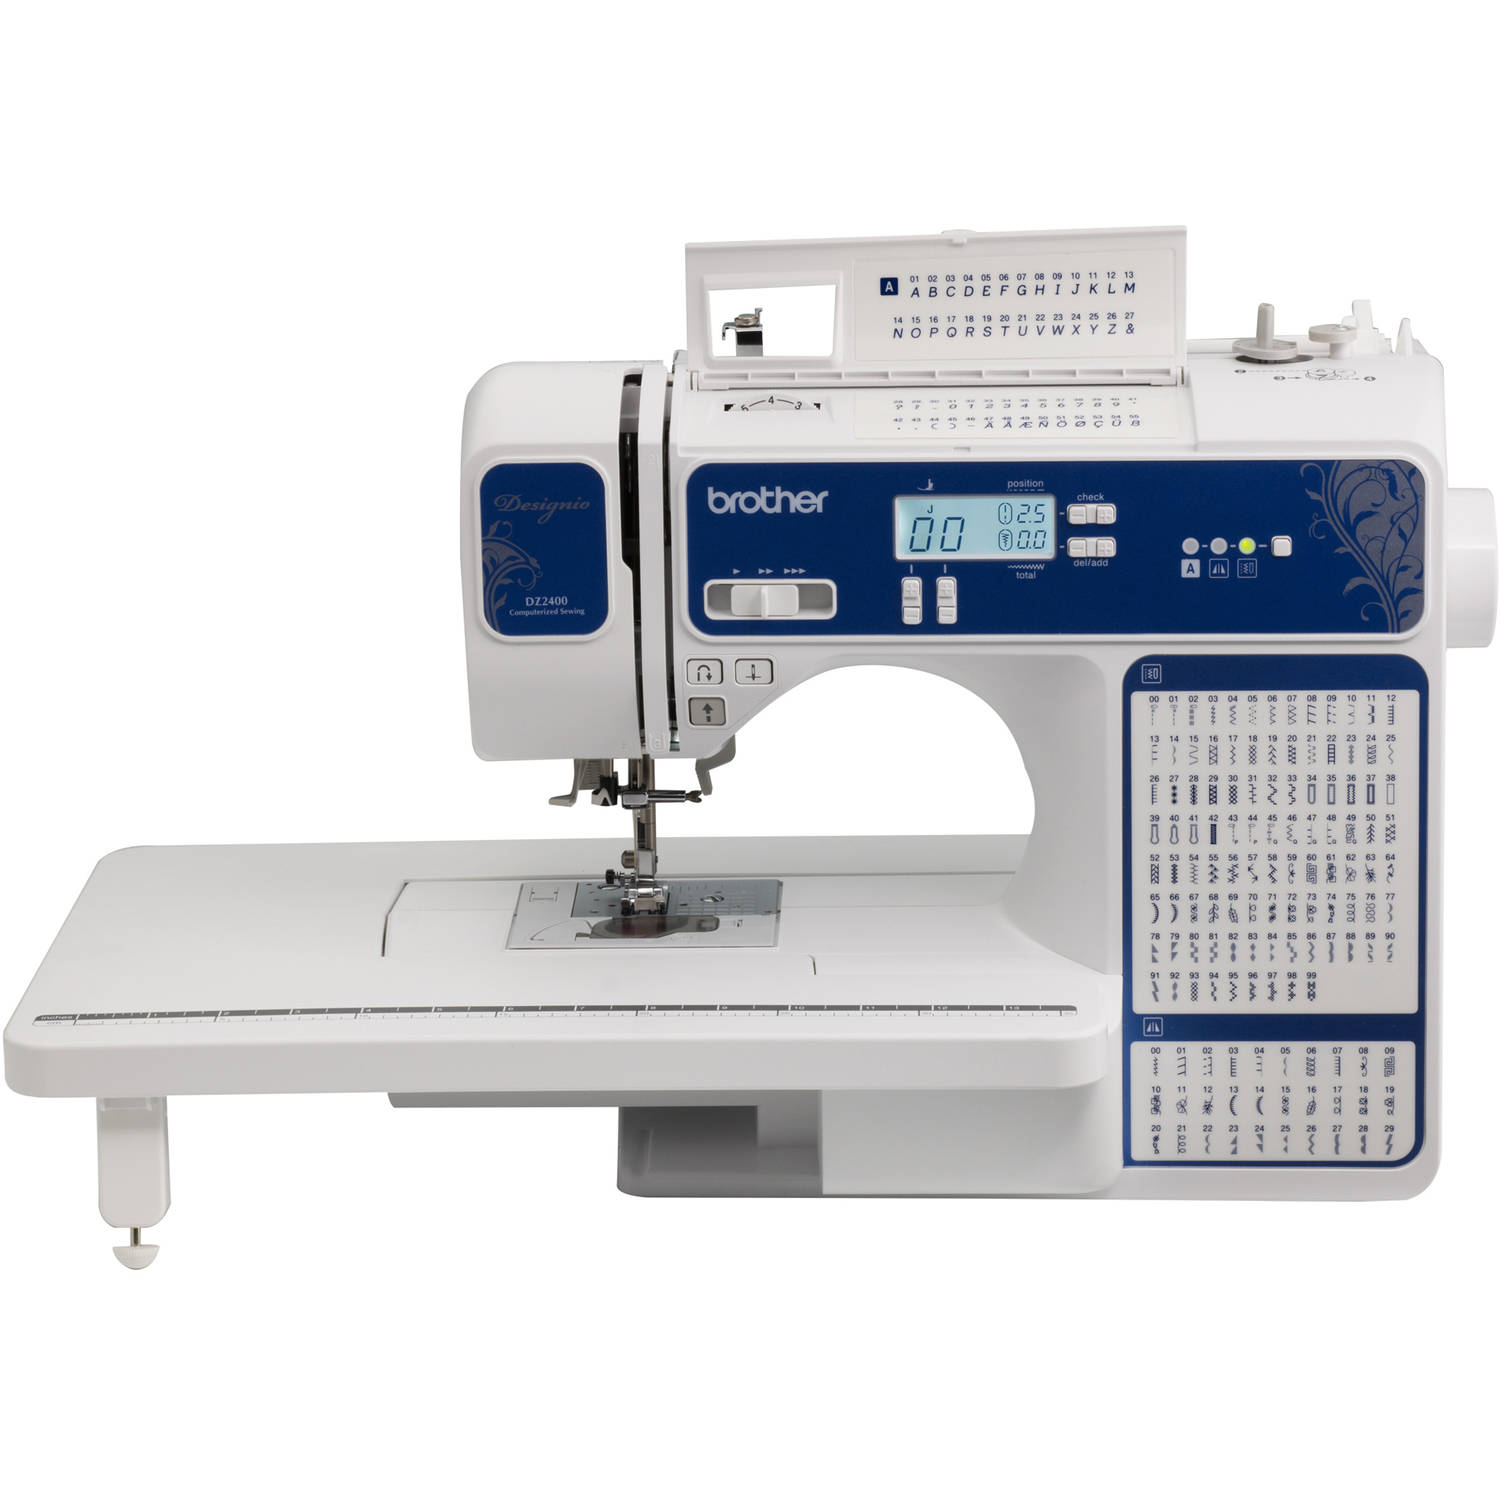 Designio Series  by Brother DZ2400 185-Stitch Computerized Sewing & Quilting Machine